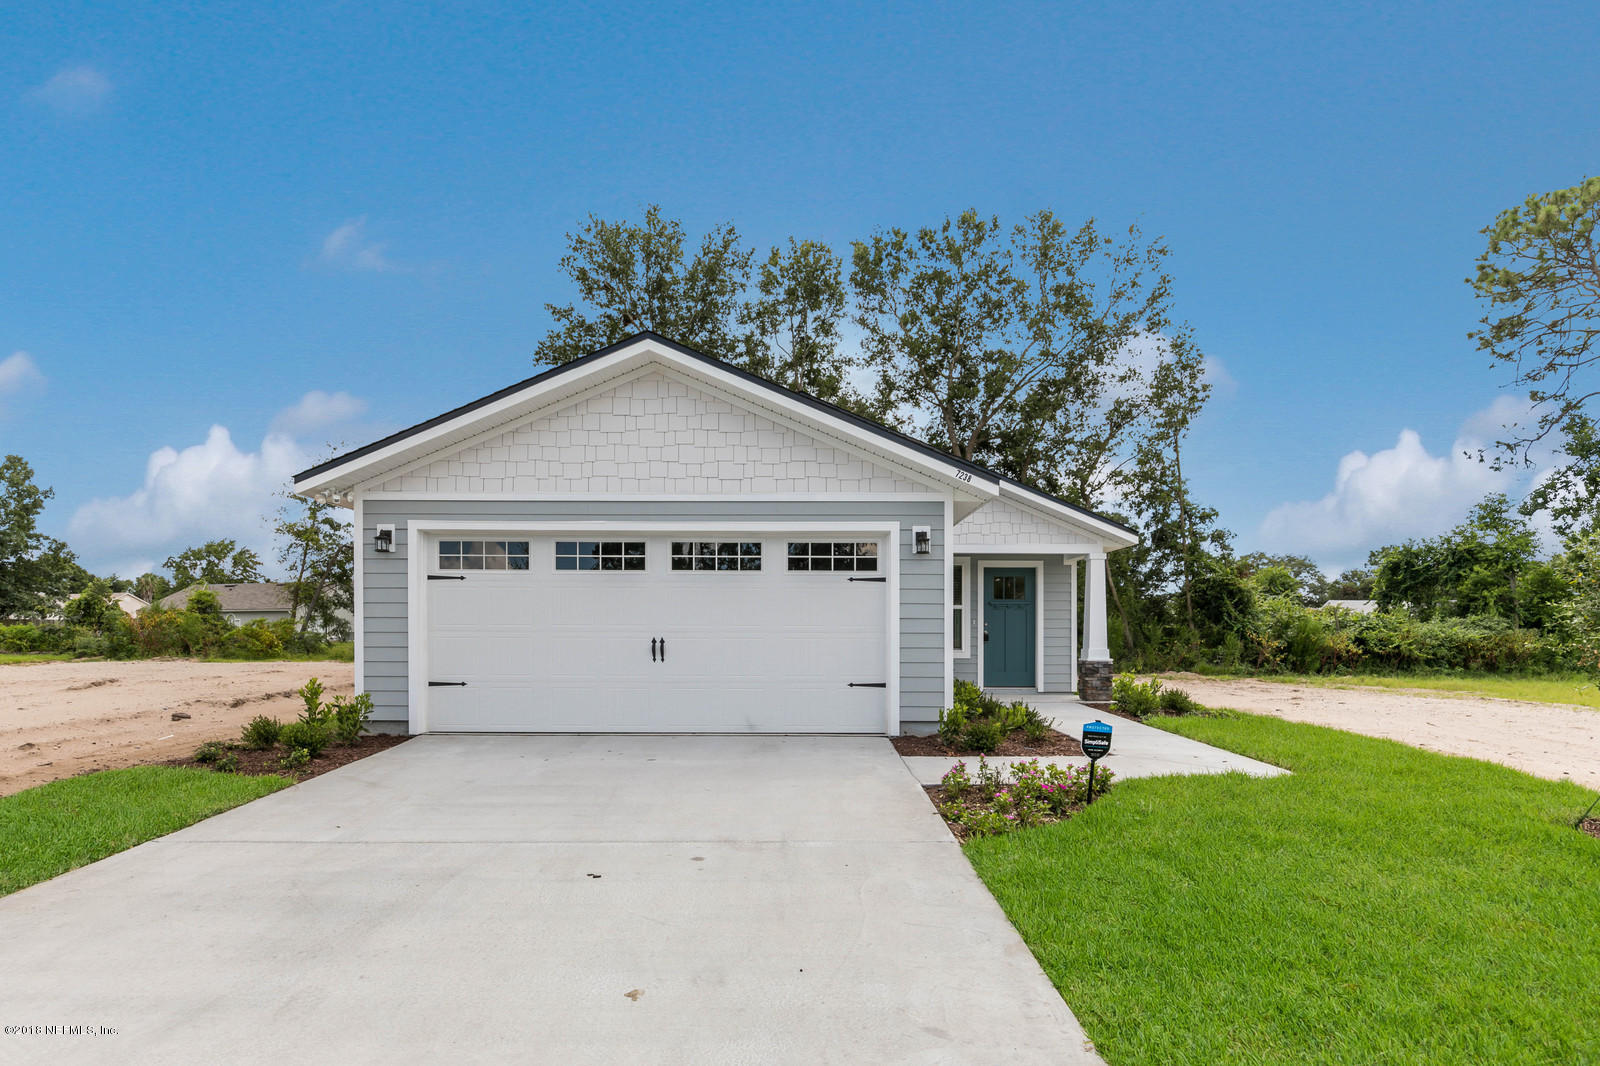 7238 TOWNSEND VILLAGE, JACKSONVILLE, FLORIDA 32277, 3 Bedrooms Bedrooms, ,2 BathroomsBathrooms,Residential - single family,For sale,TOWNSEND VILLAGE,965365